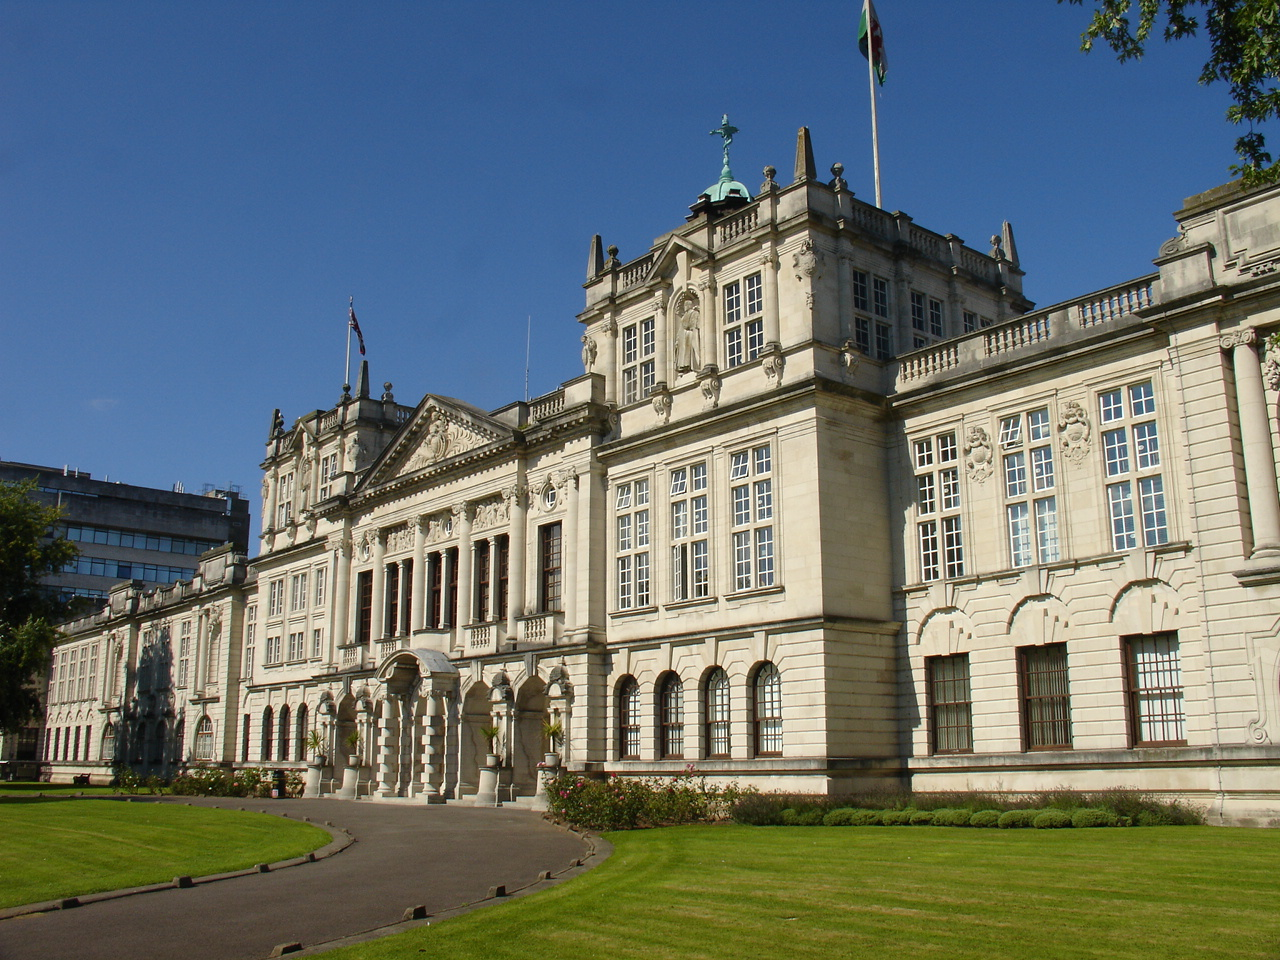 Welsh School of Architecture, Cardiff